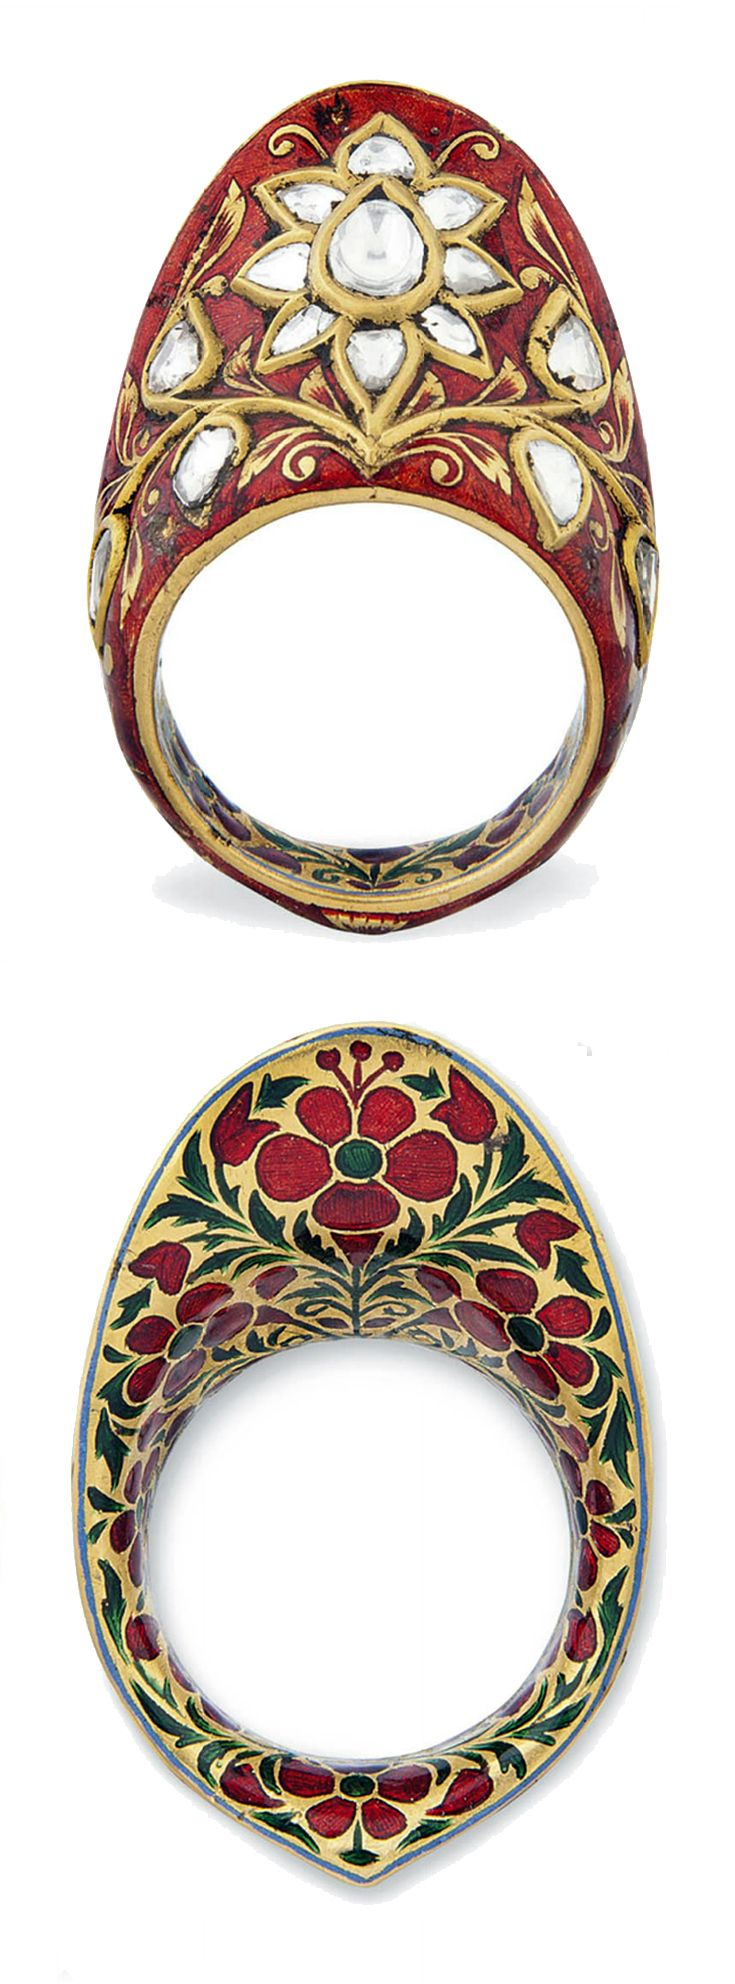 India | Archer's ring; gold, diamonds and enamel | 19th century |